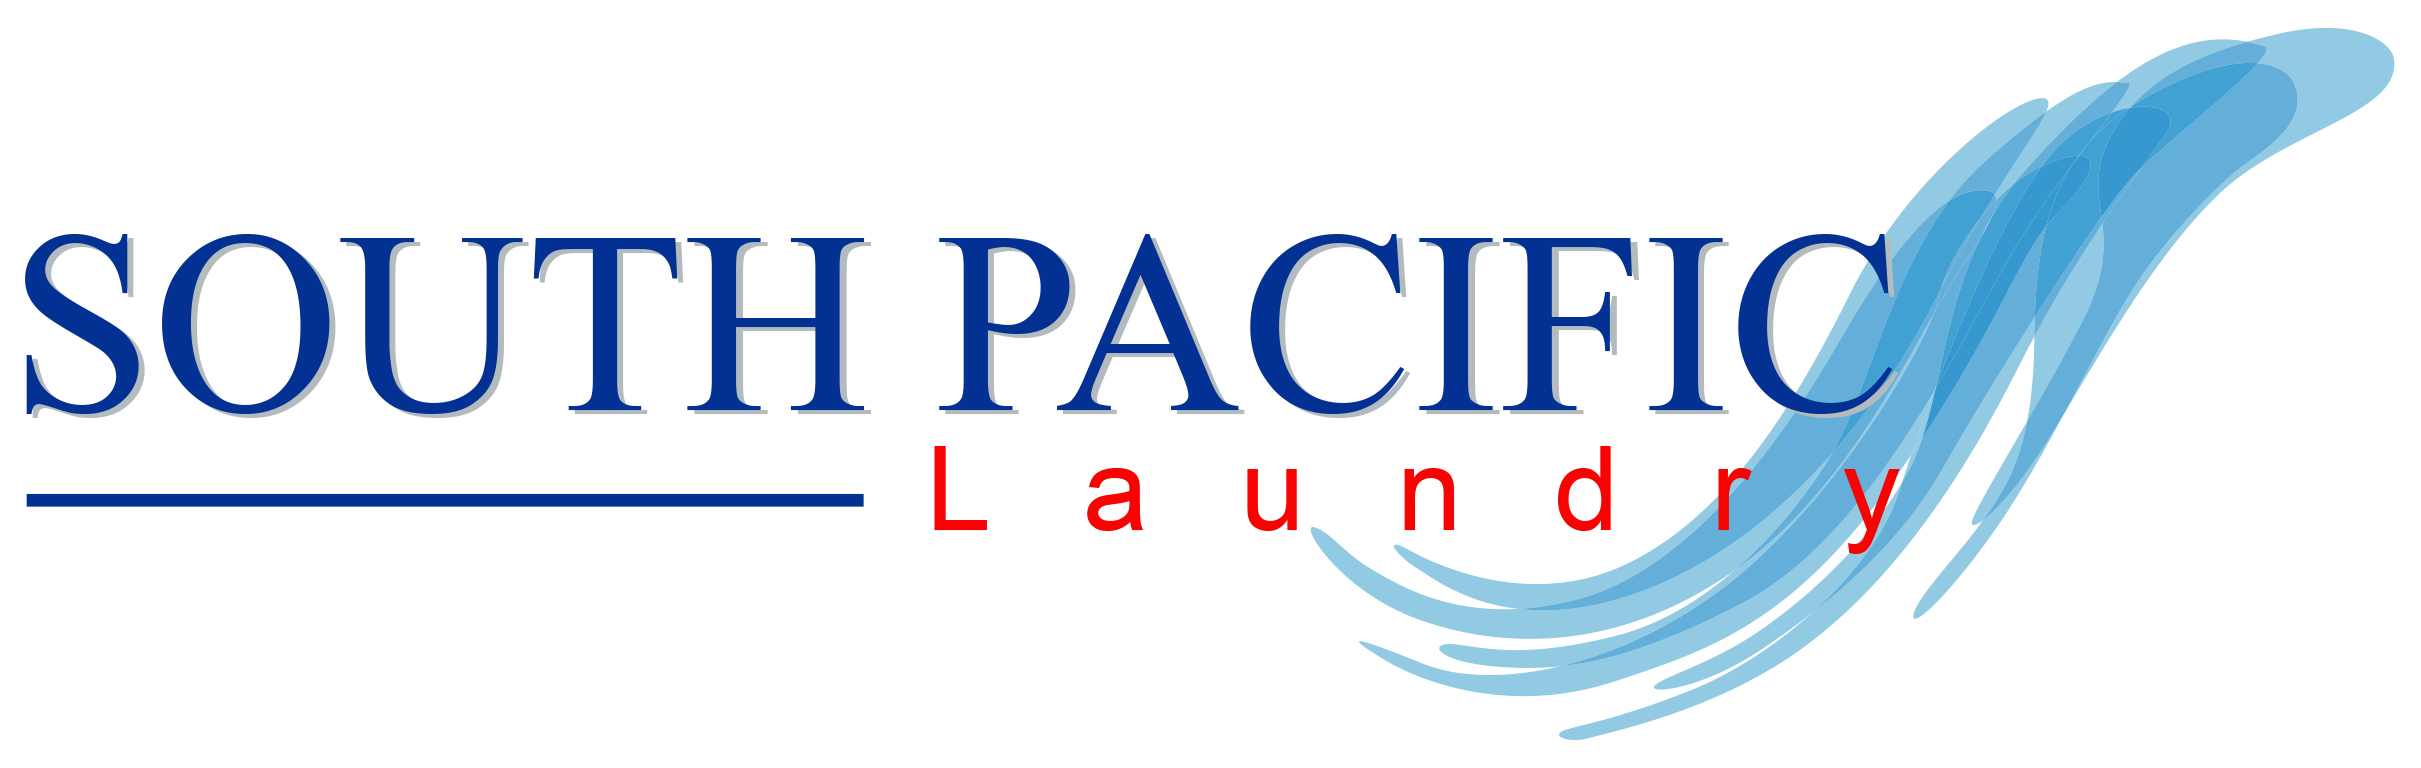 South Pacific Laundry Pty Ltd